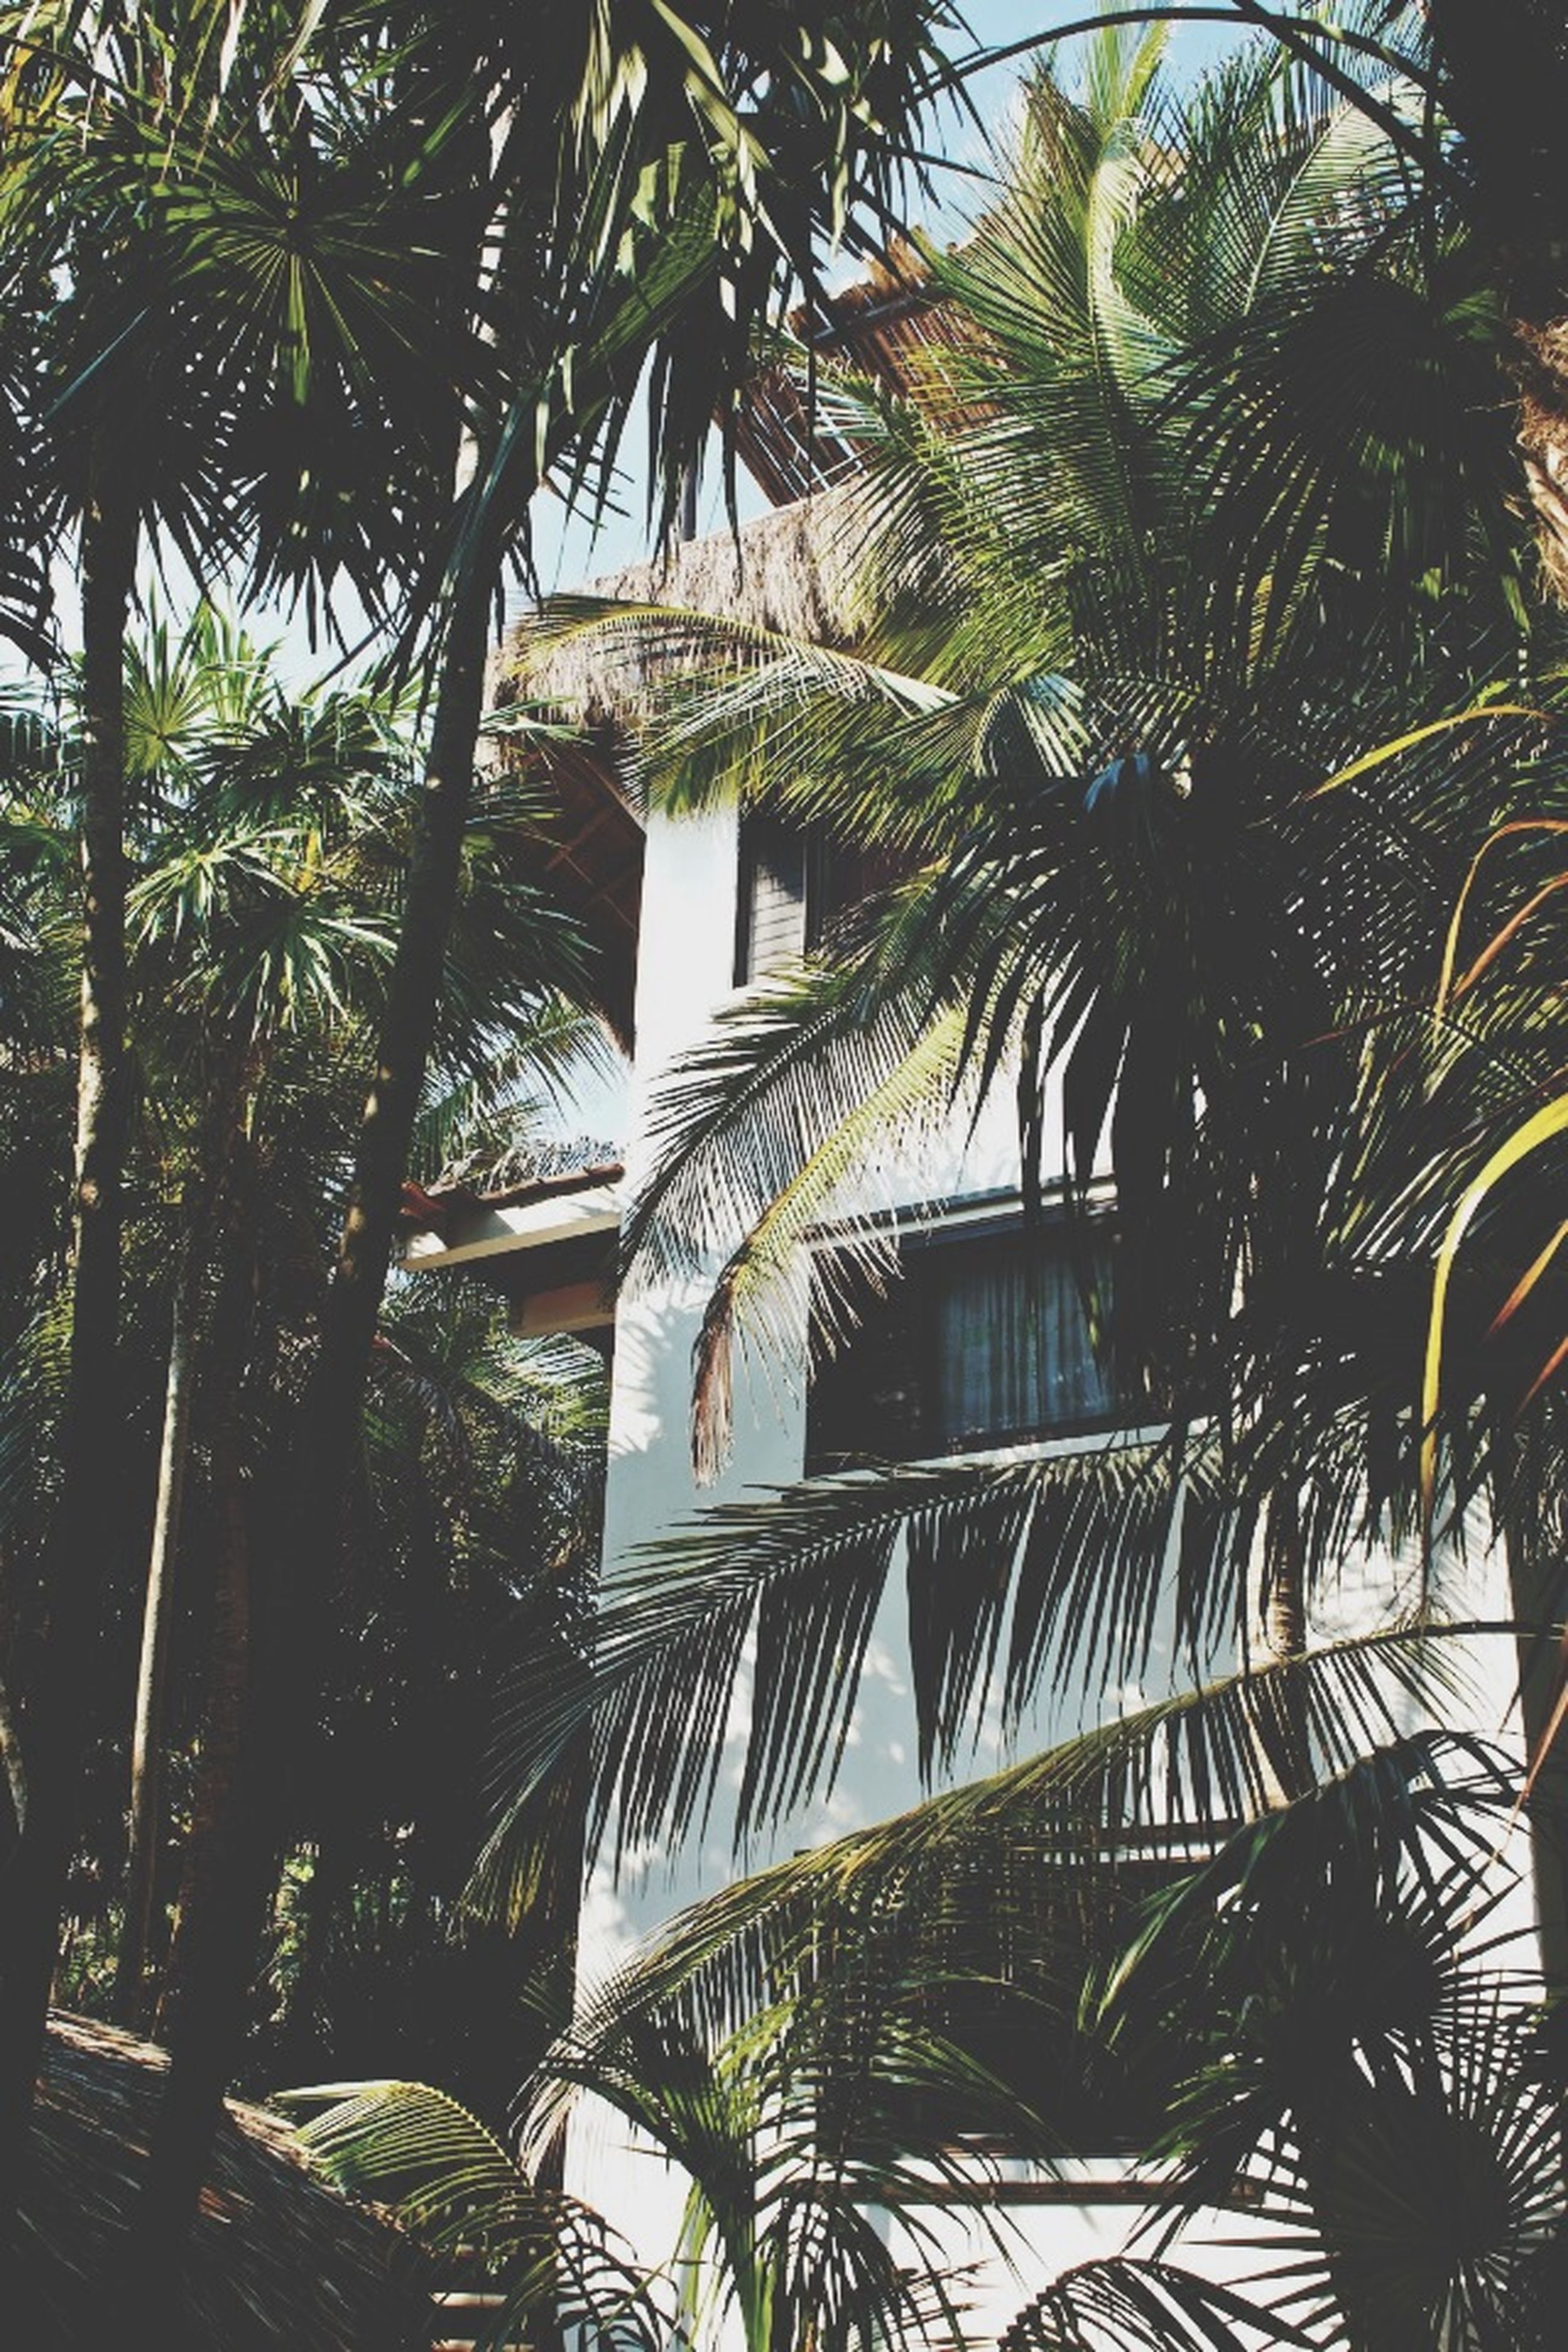 building exterior, architecture, tree, built structure, low angle view, palm tree, growth, building, branch, residential building, house, green color, day, sky, outdoors, residential structure, leaf, sunlight, no people, city